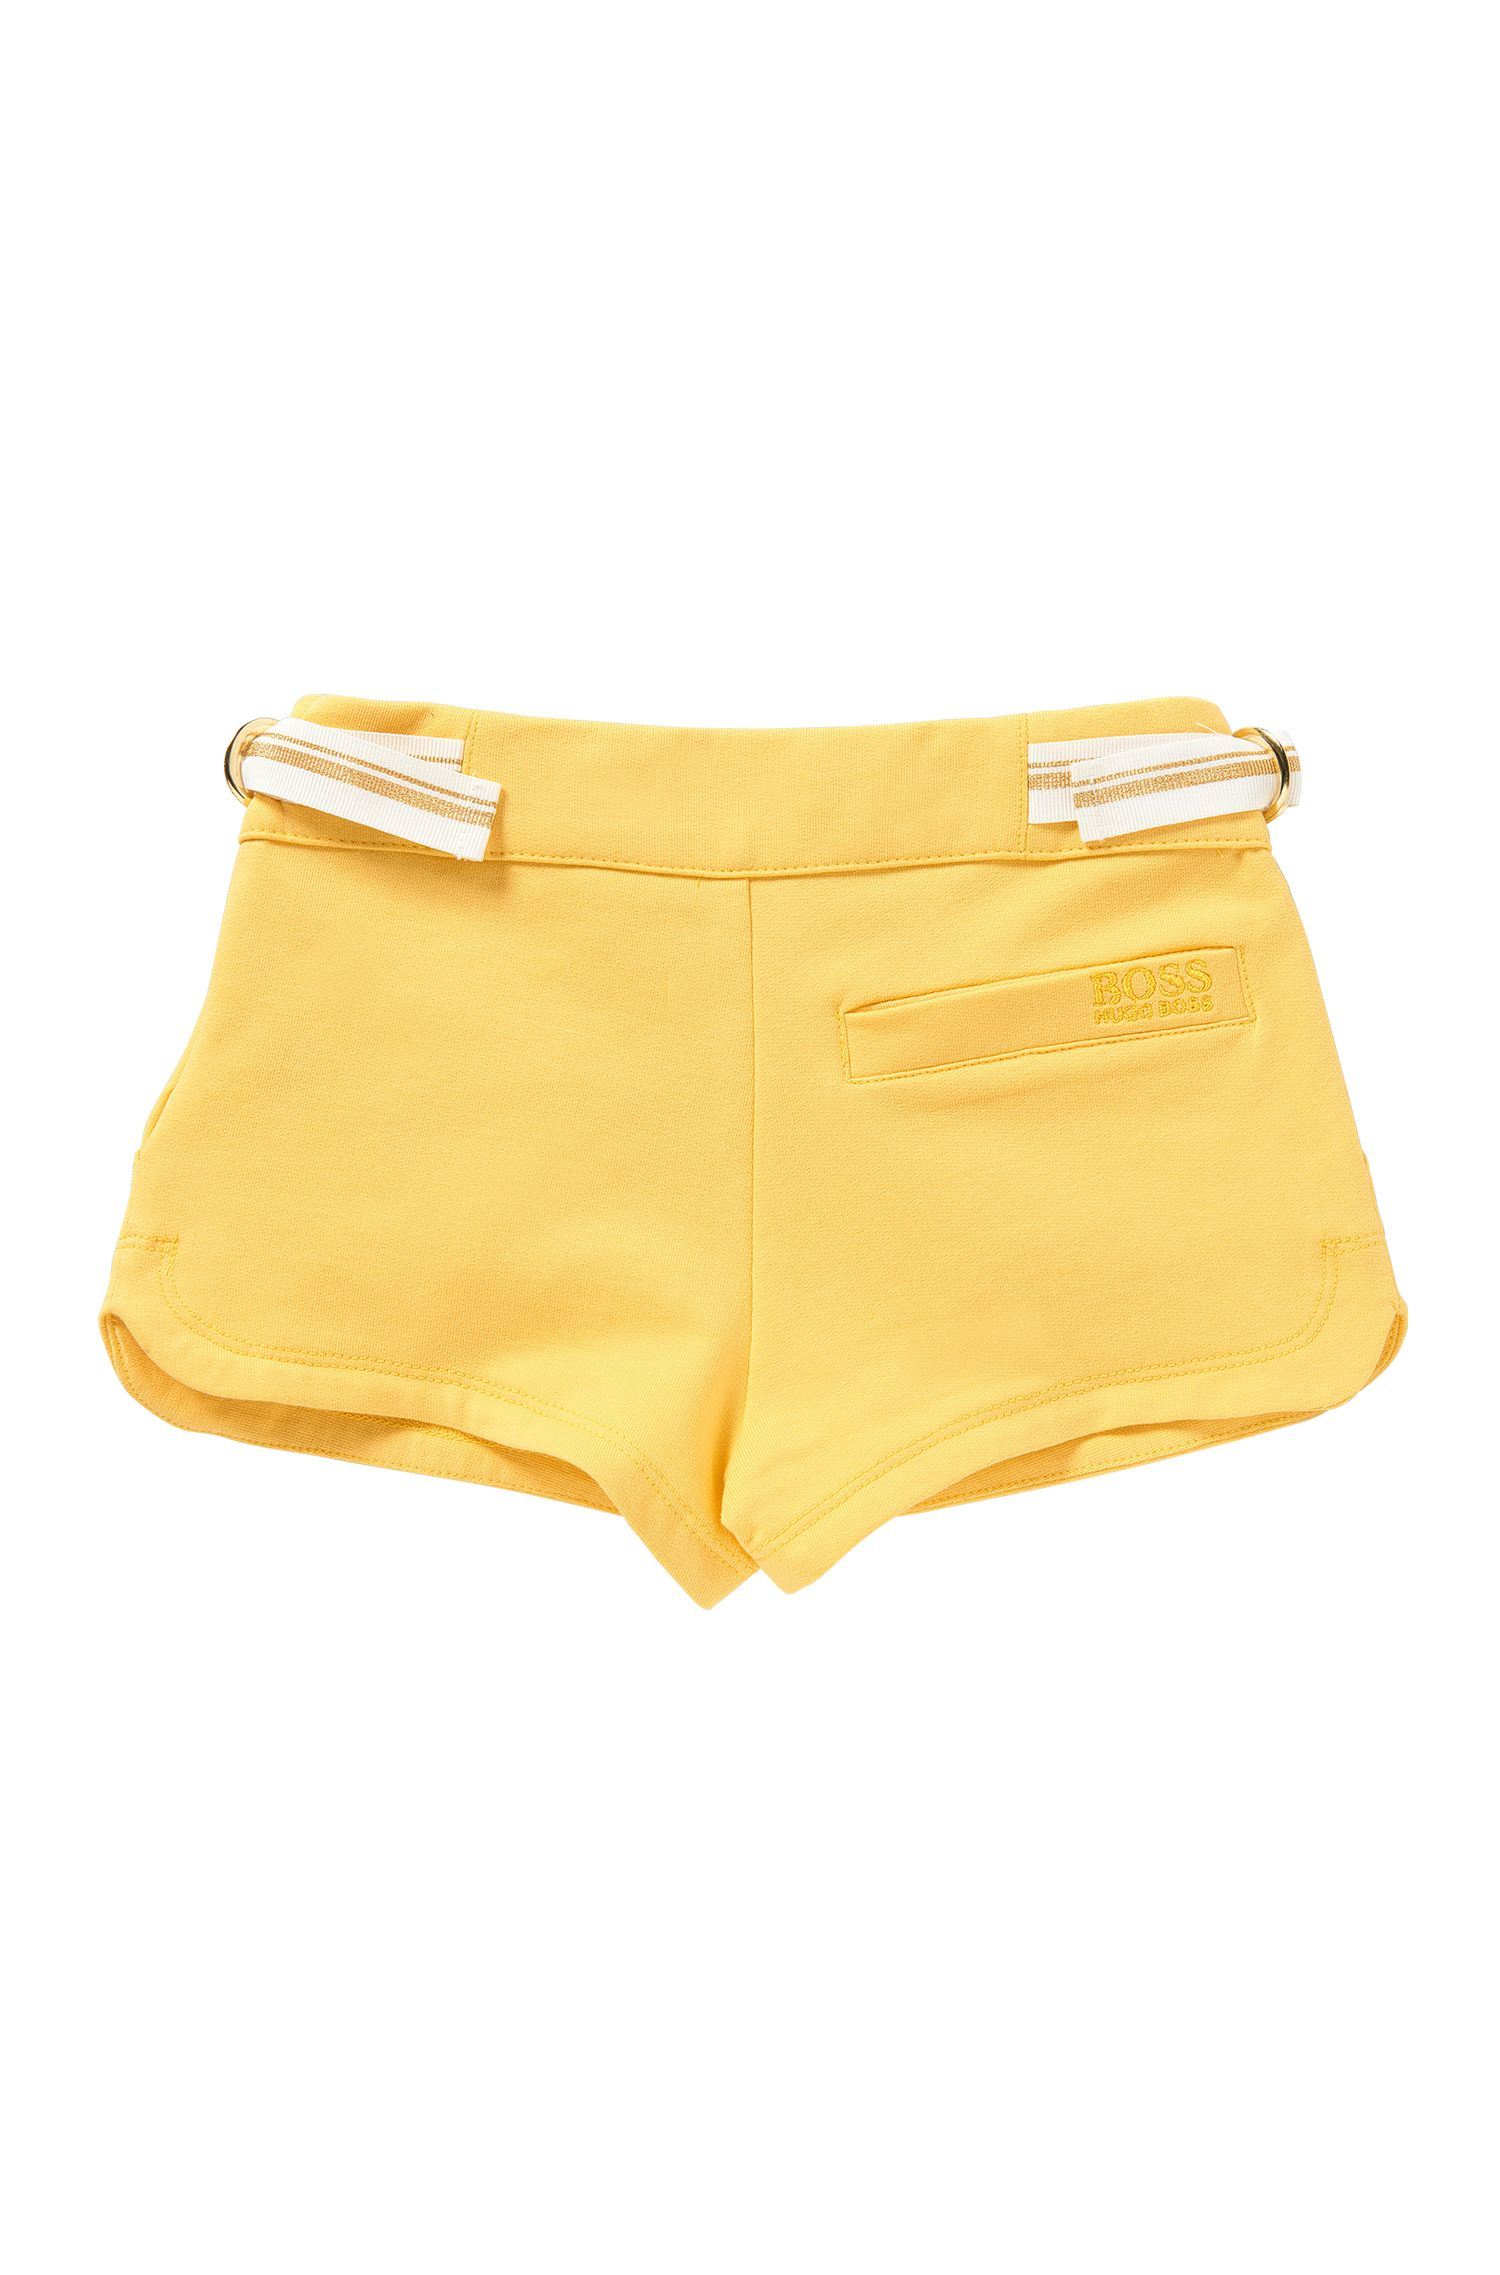 Kids-Shorts aus Stretch-Baumwolle mit Bindeband: 'J14173'